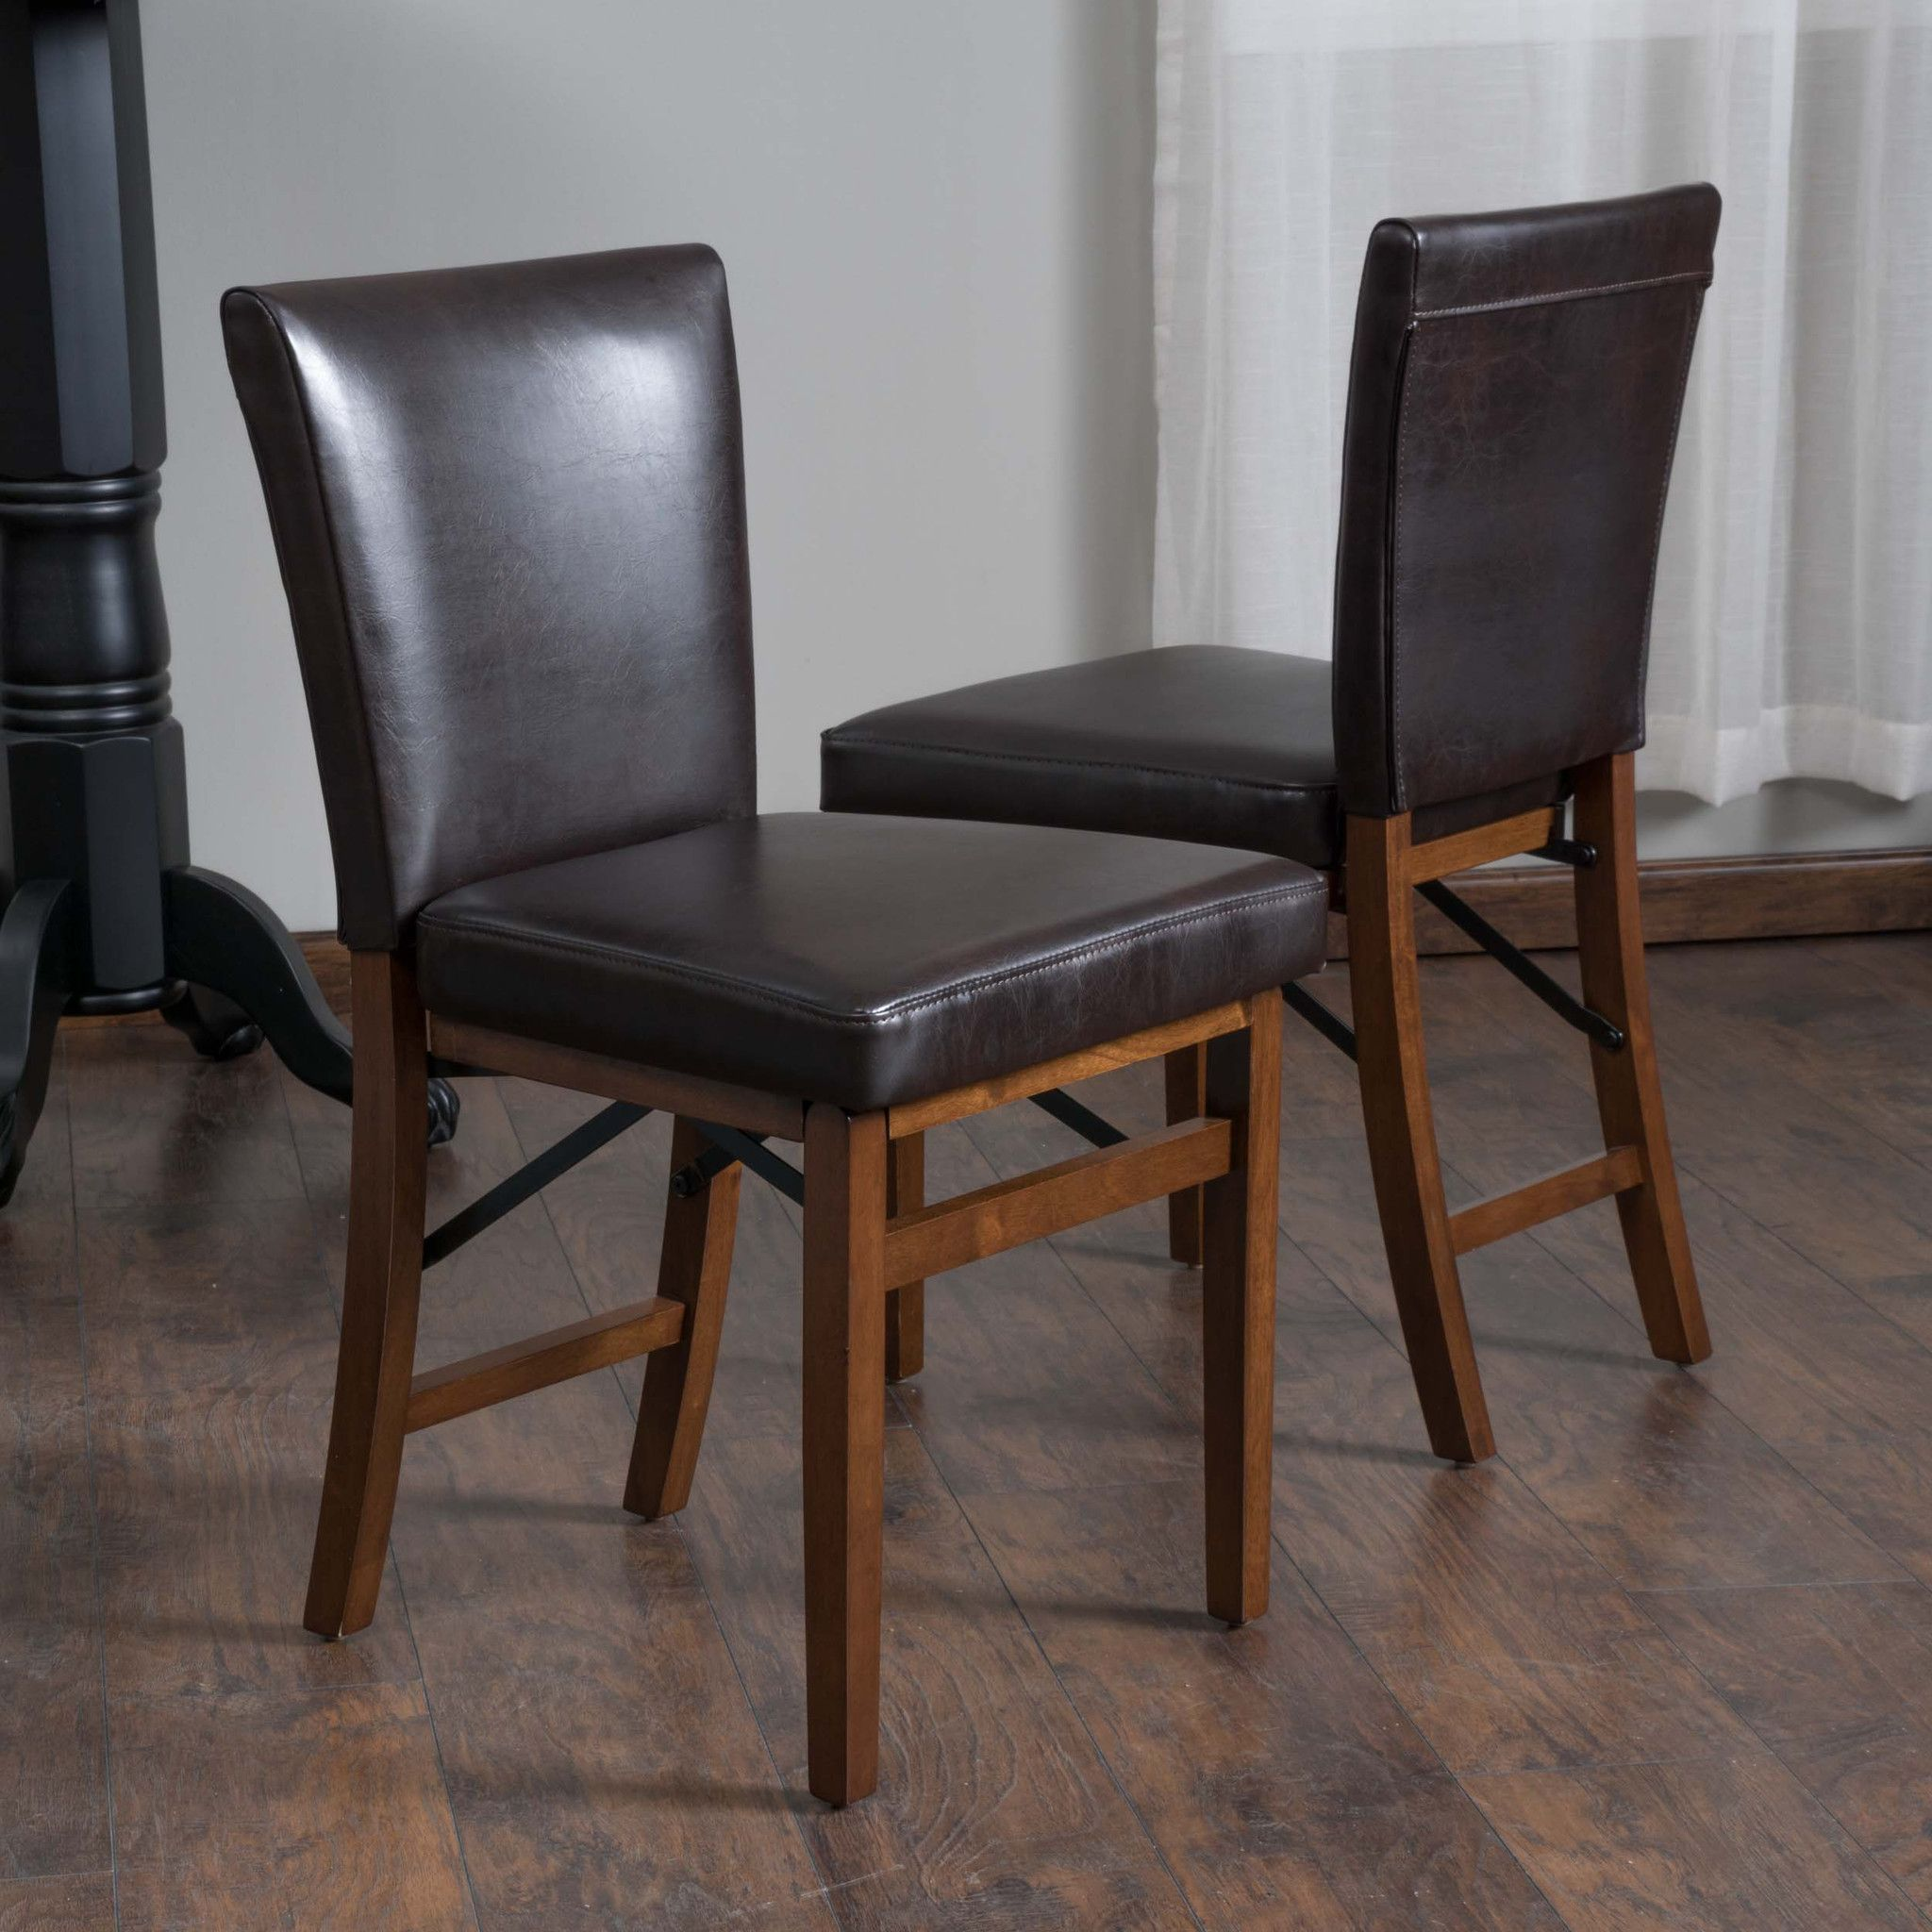 best 20 folding dining chairs ideas on signup required folding chairs folding chair and flexible love folding chair